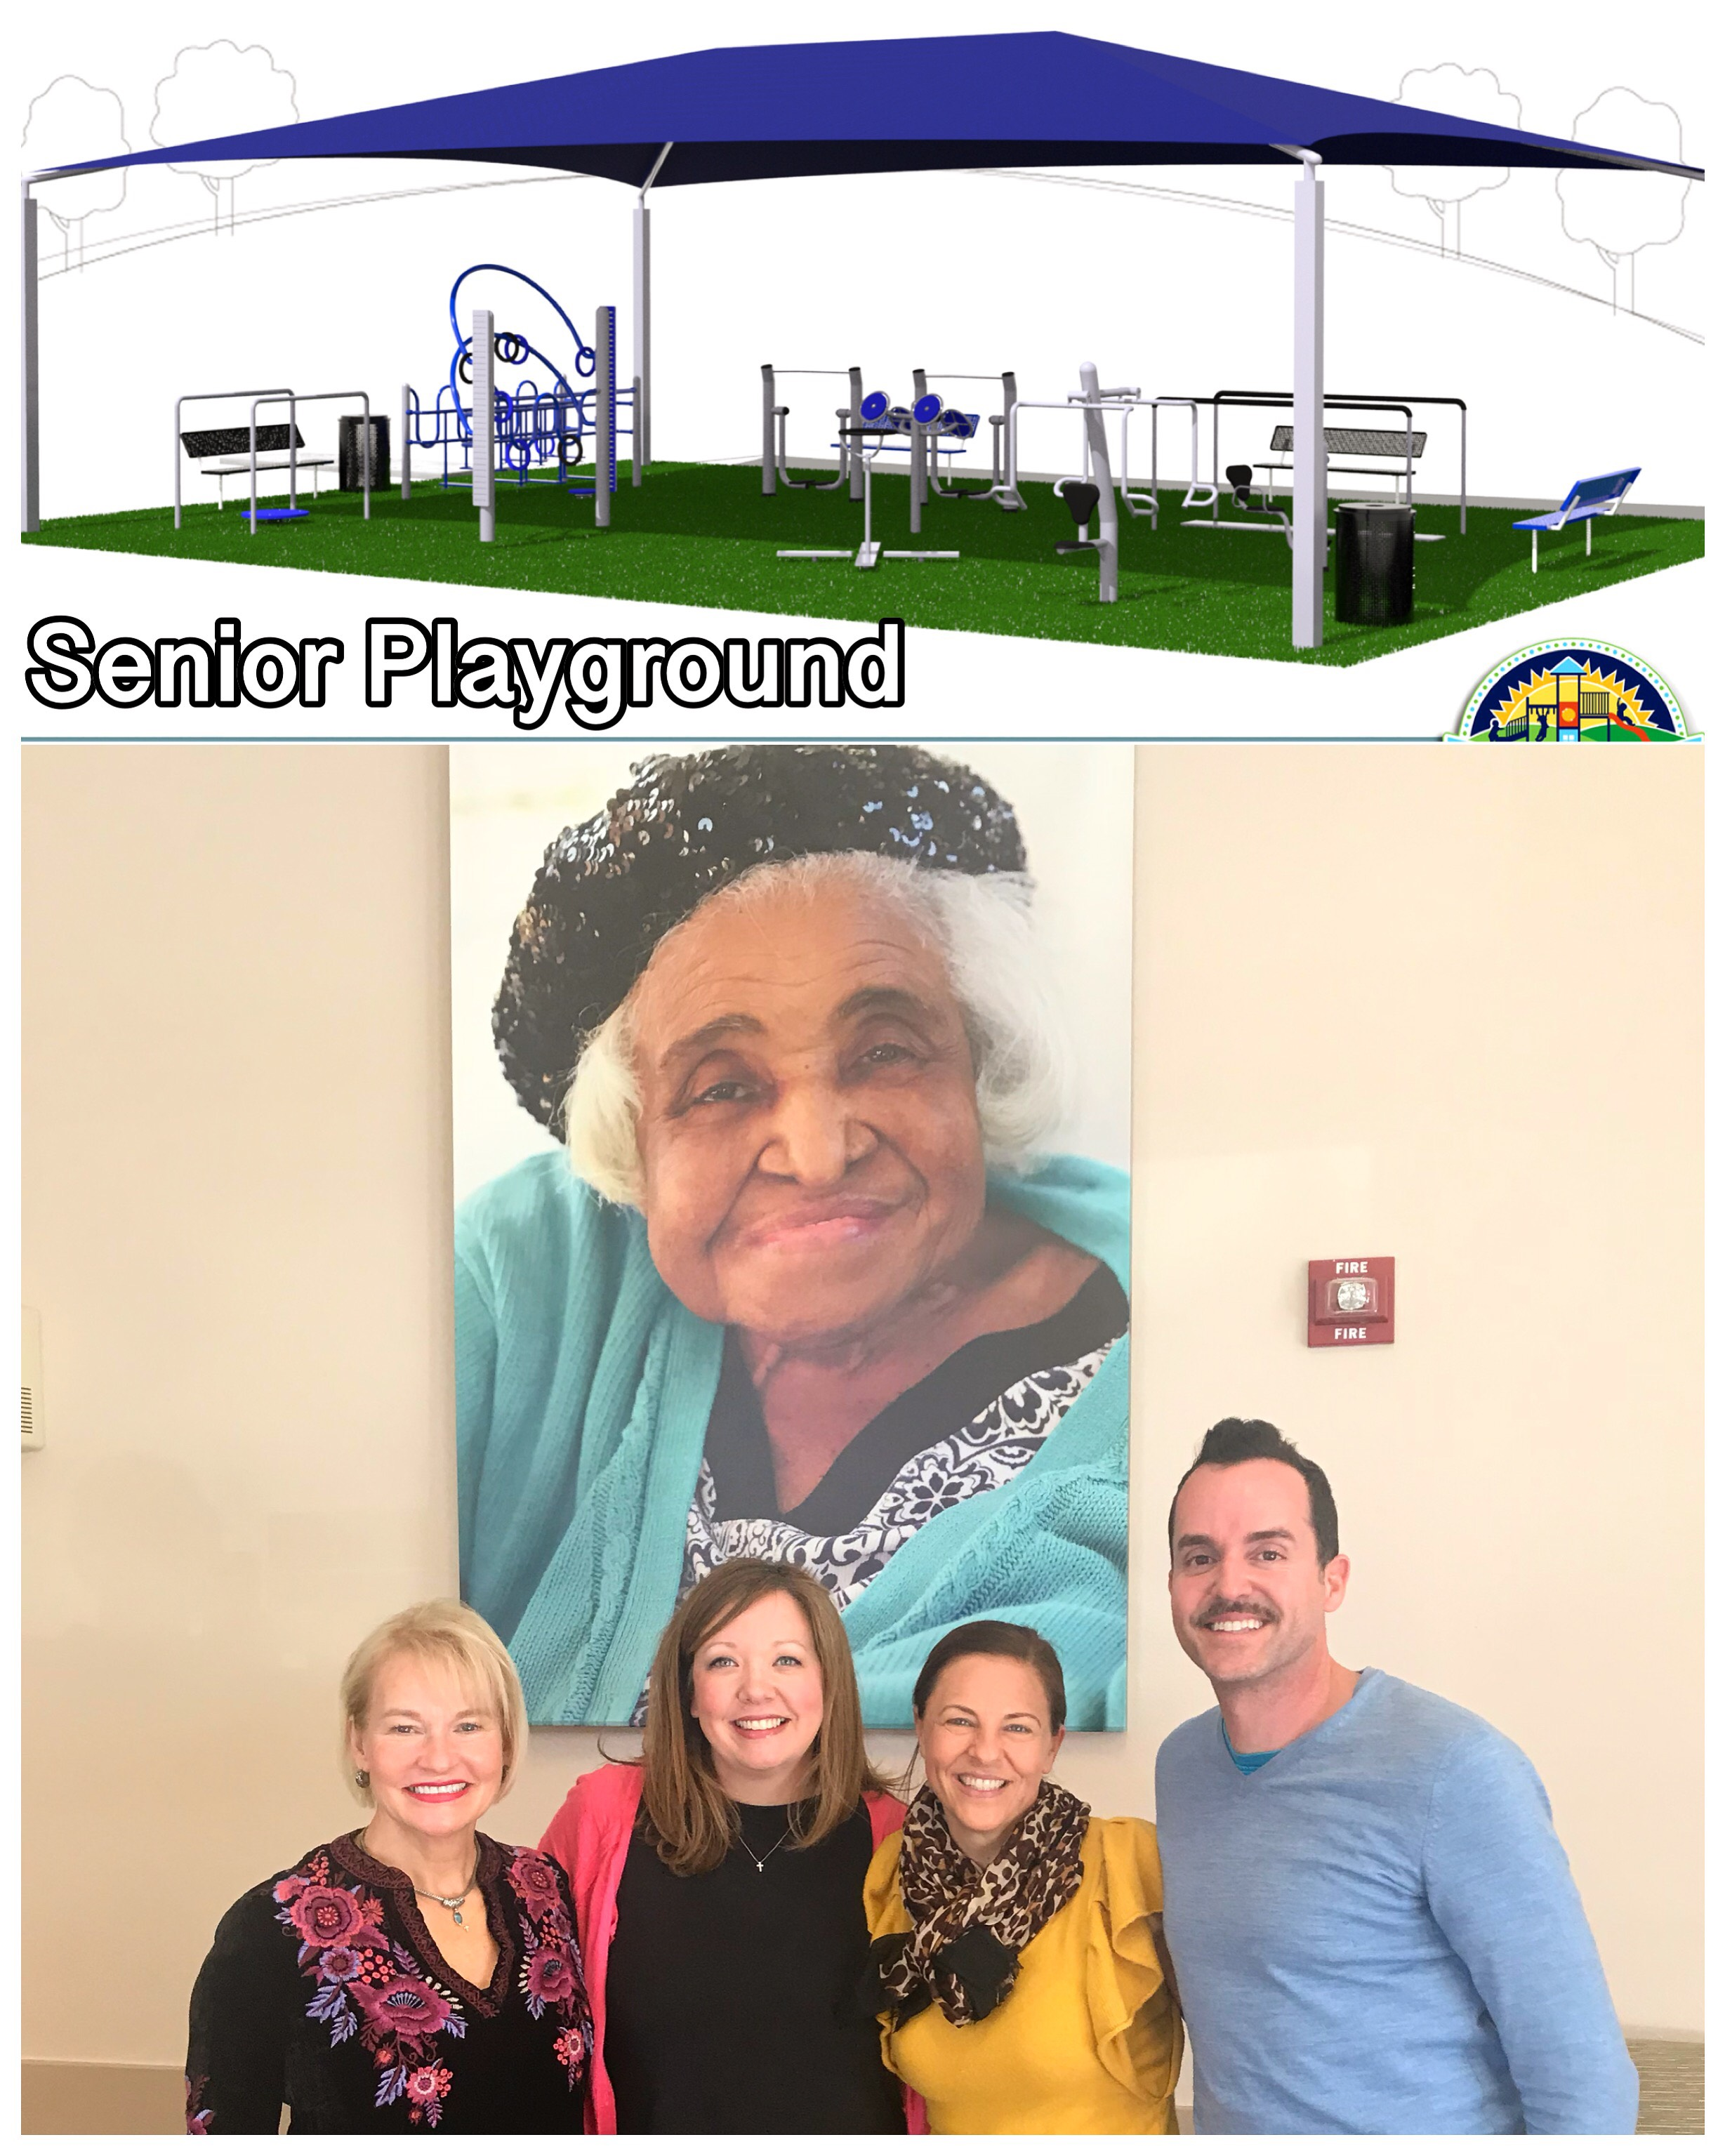 In January of 2019, Great Age Movement finalized the Senior Playground proposal with St. Dominic's Village C.E.O., Amy Shields and B.D.O., Kimberly Elliot.